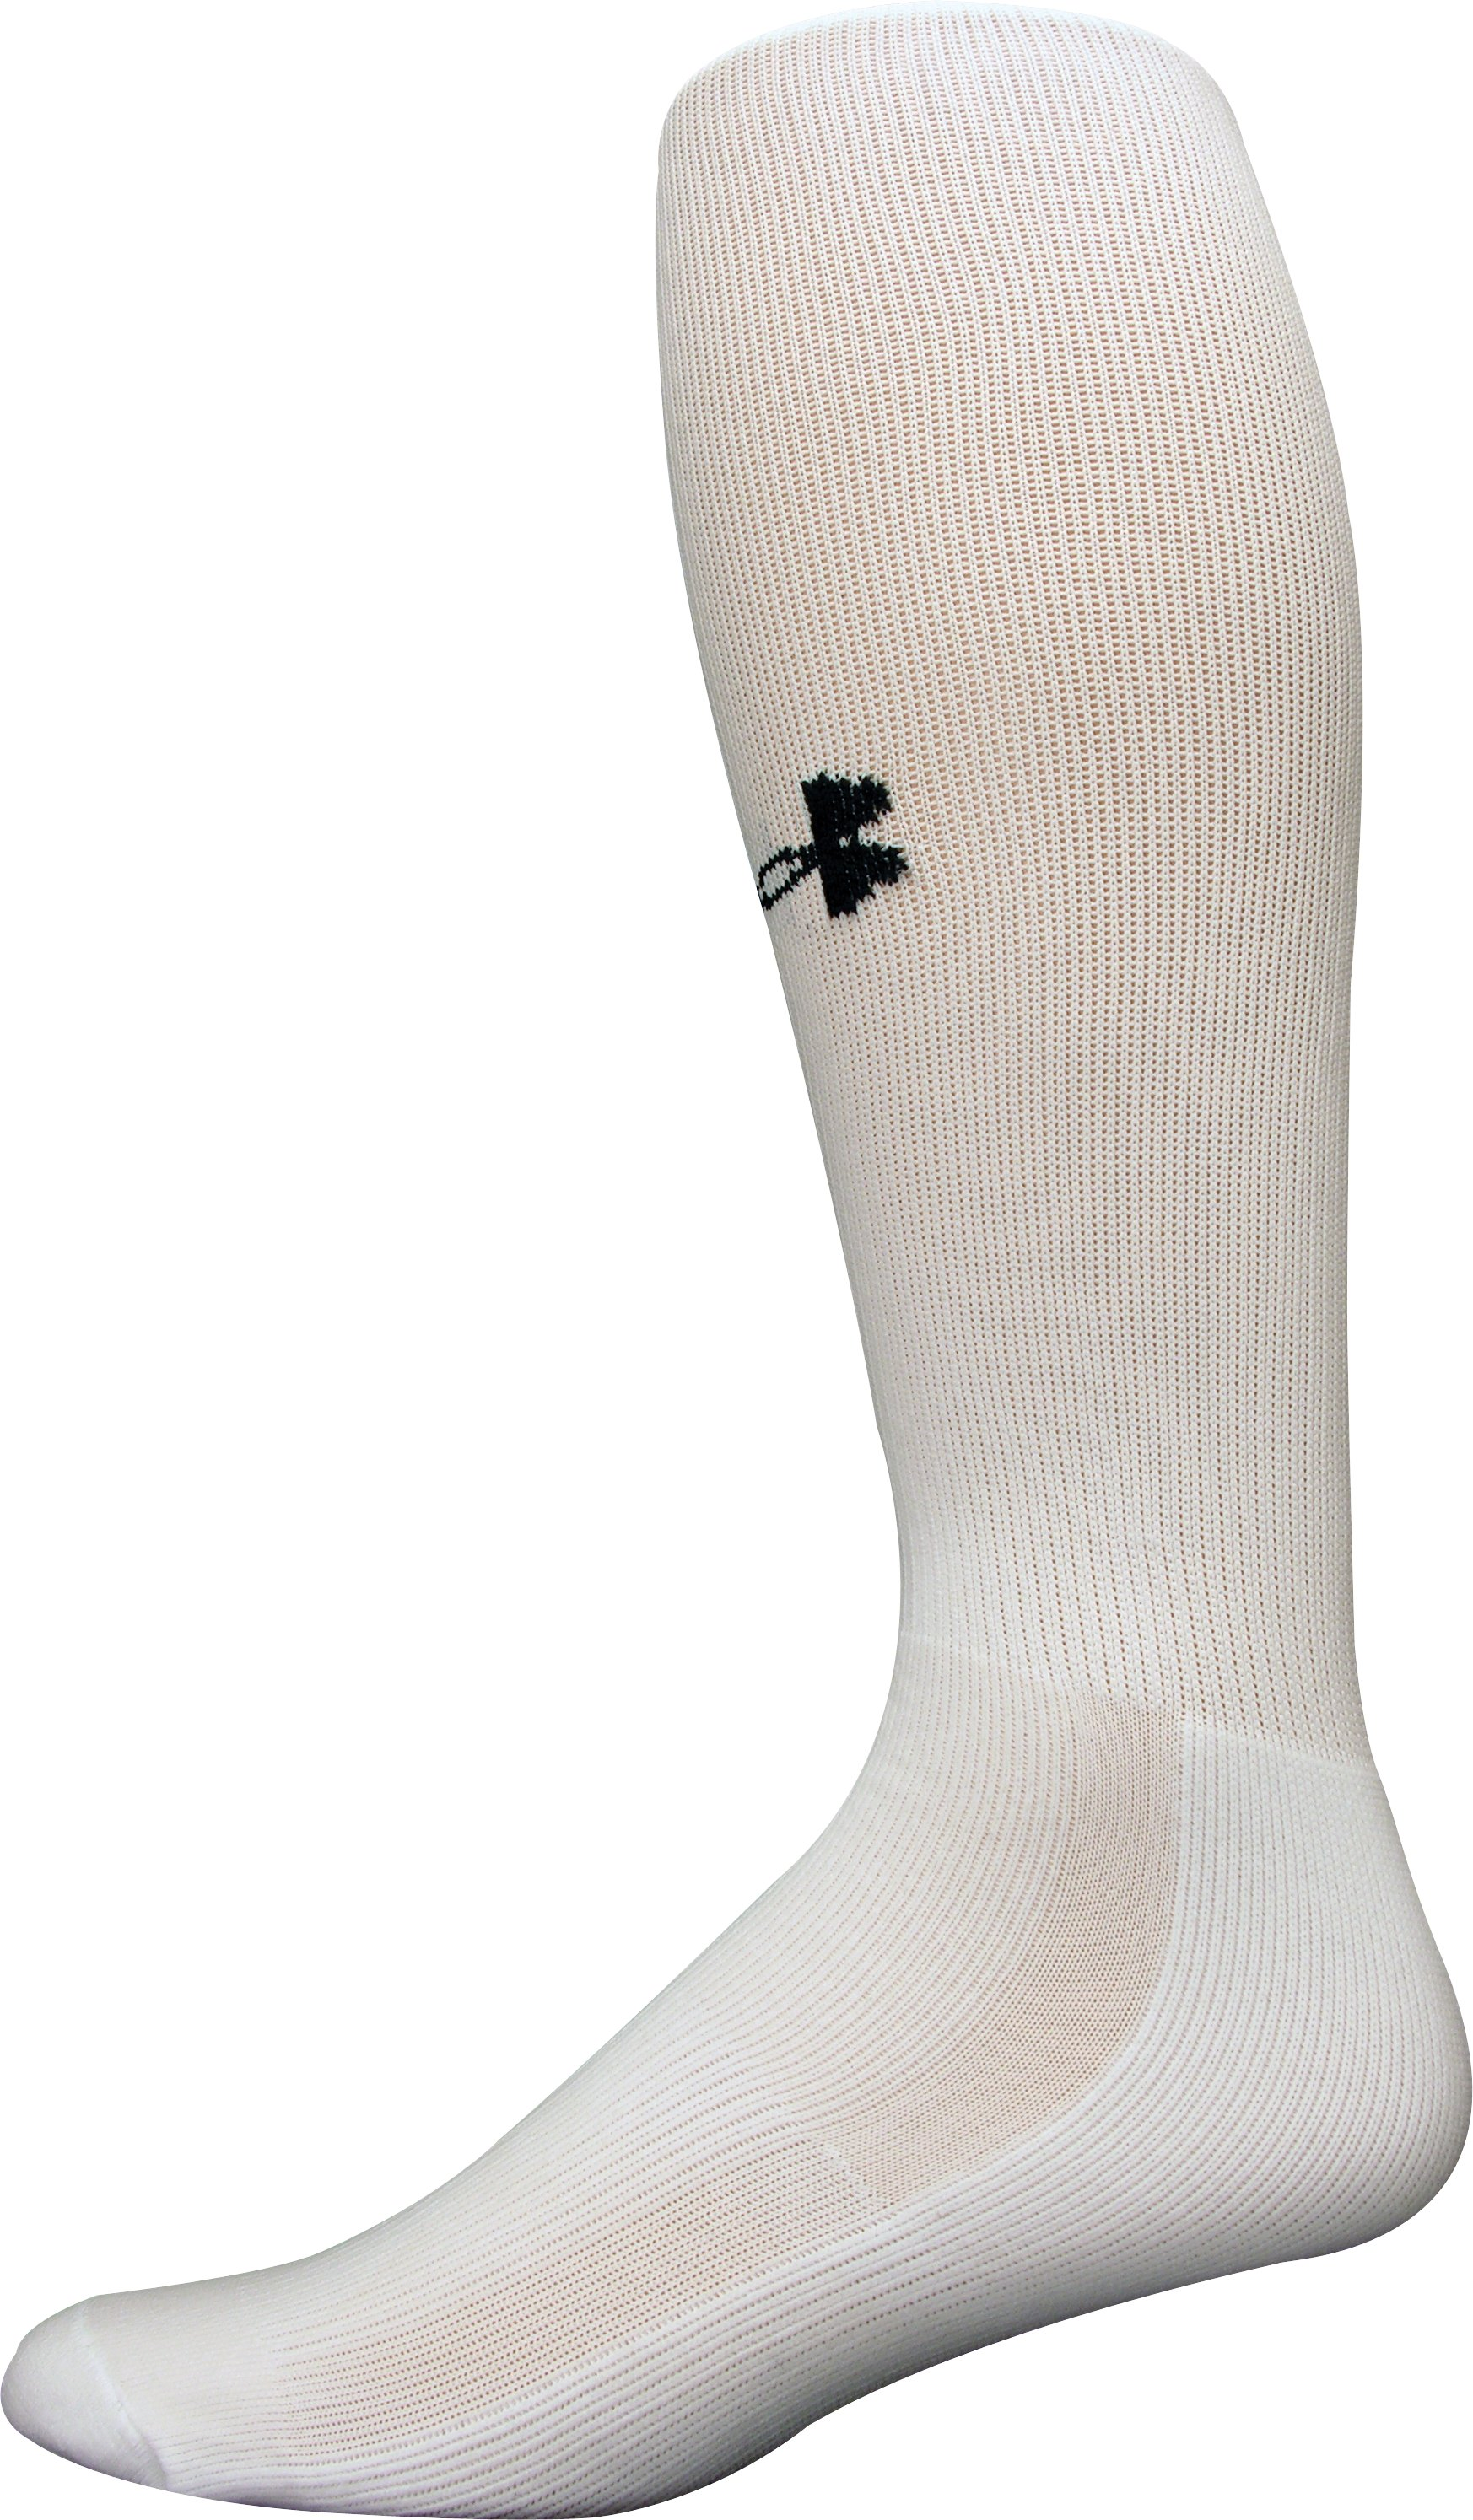 Men's Hockey Liner Socks, White